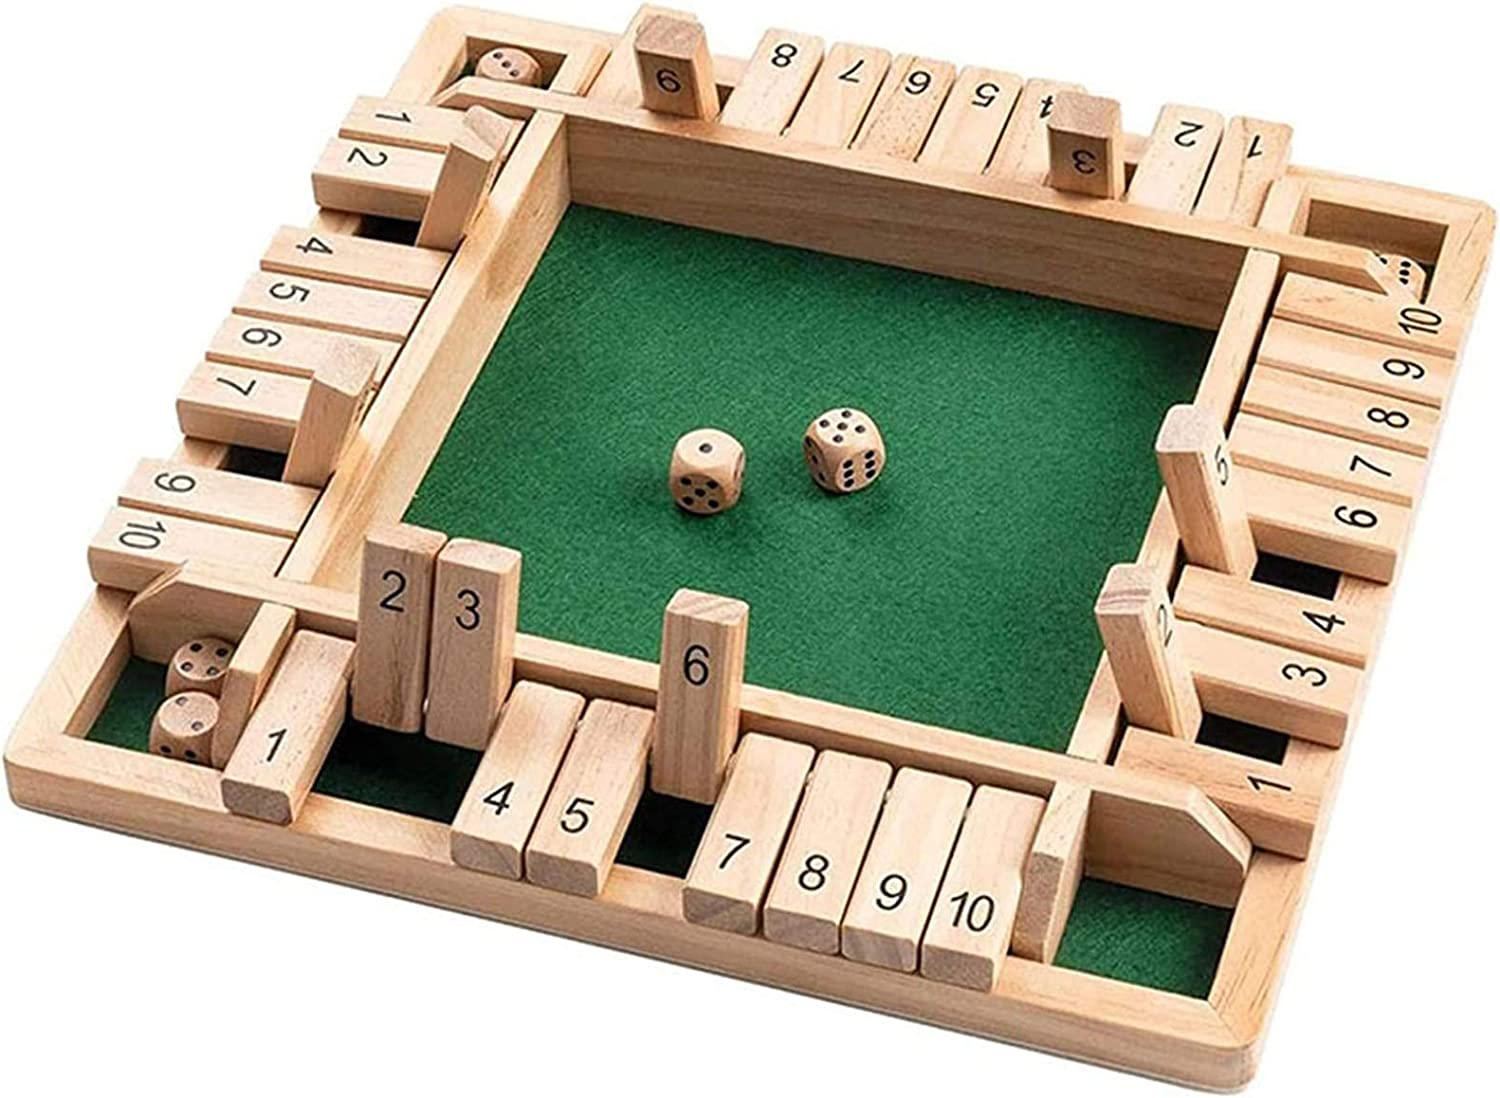 Miylim Cheap mail order specialty store Wooden Board Game 4 Player Math T New popularity The Shut Box Dice